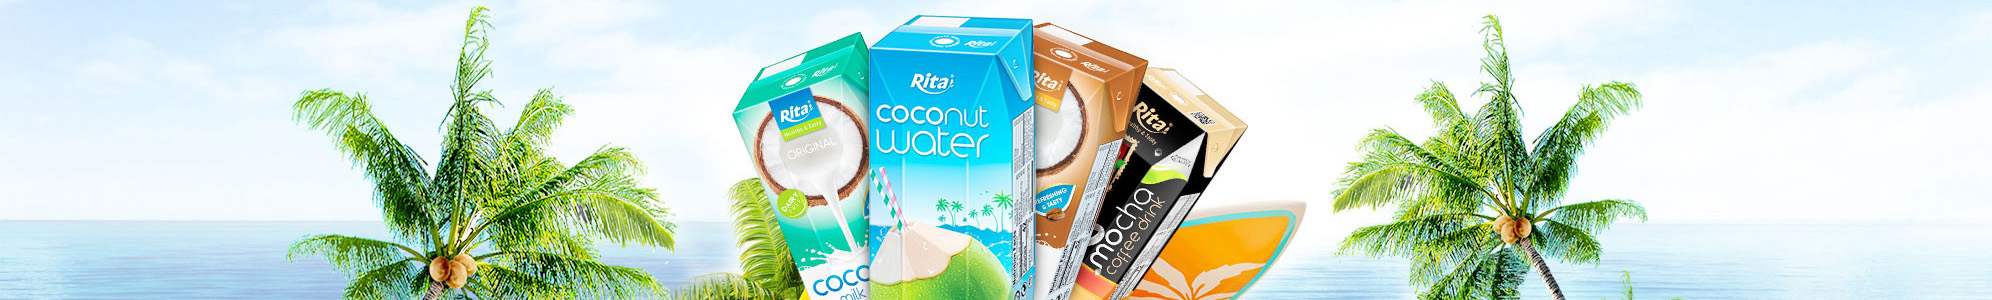 Rita coconut water